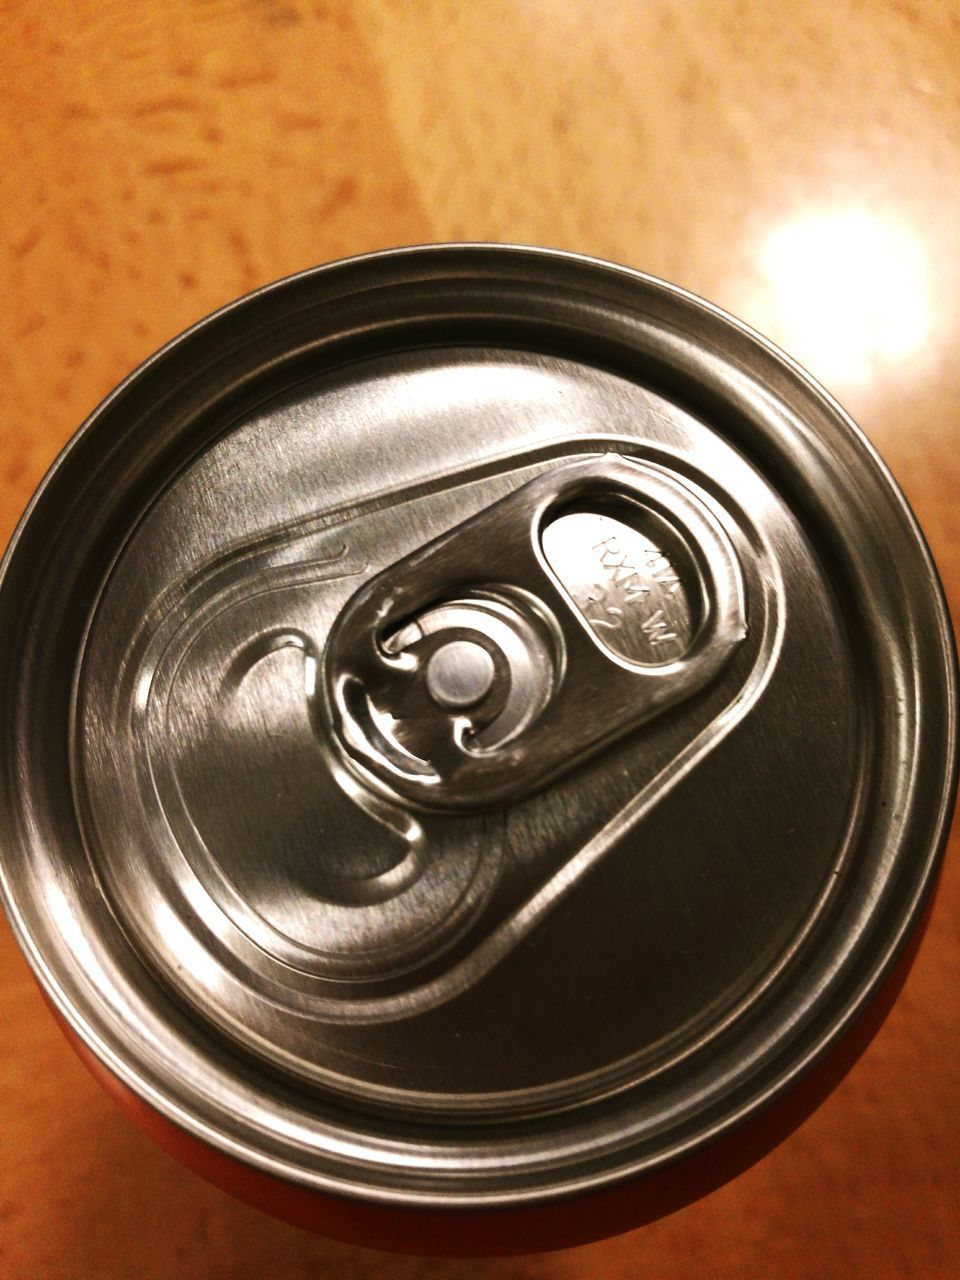 metal, drink can, food and drink, can, indoors, close-up, aluminum, no people, lid, table, directly above, drink, food, day